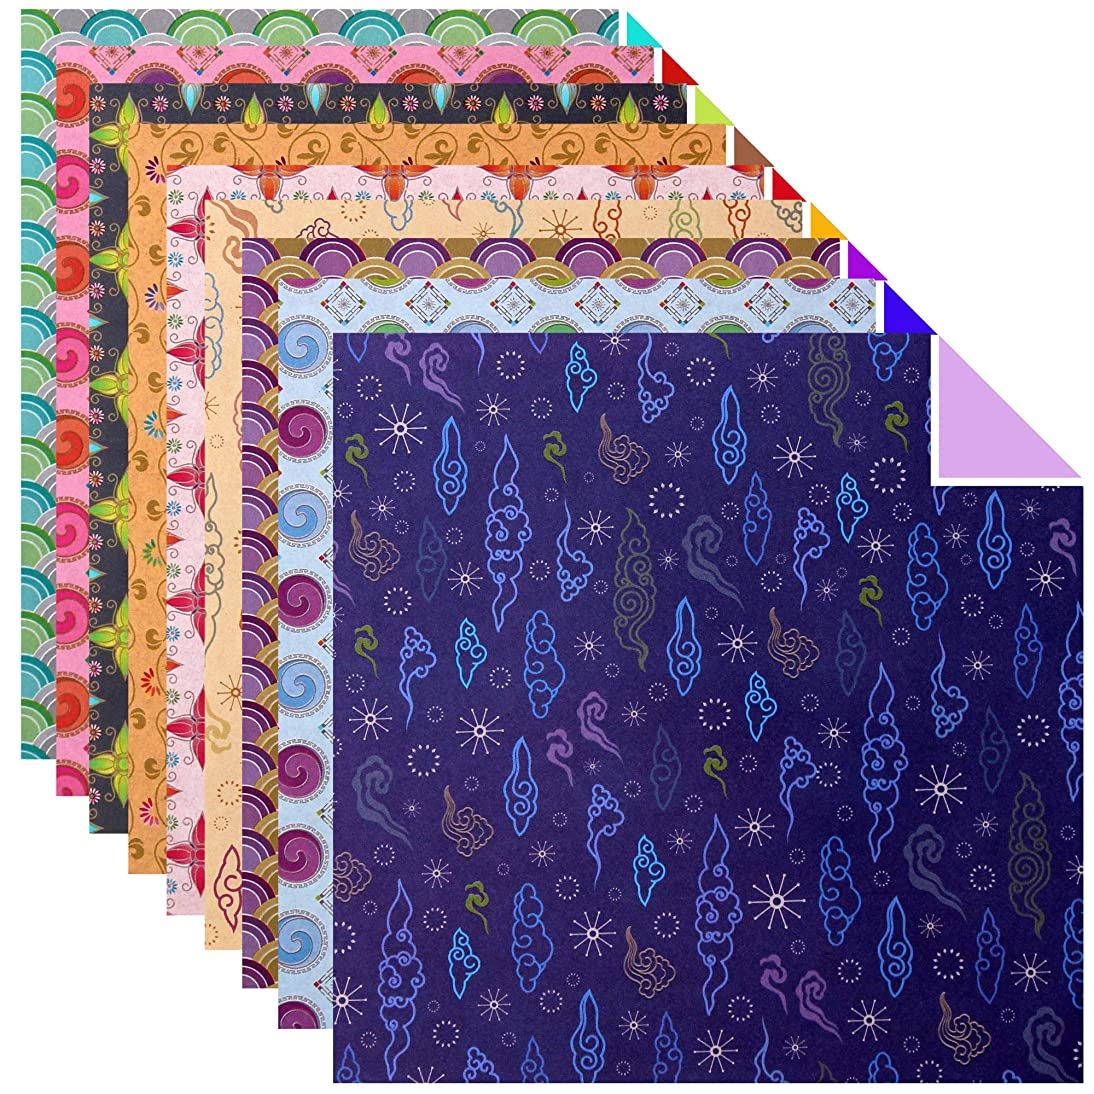 100 Sheets Double Sided Origami Paper Various Patterns (Traditional Korean Pattern 3)